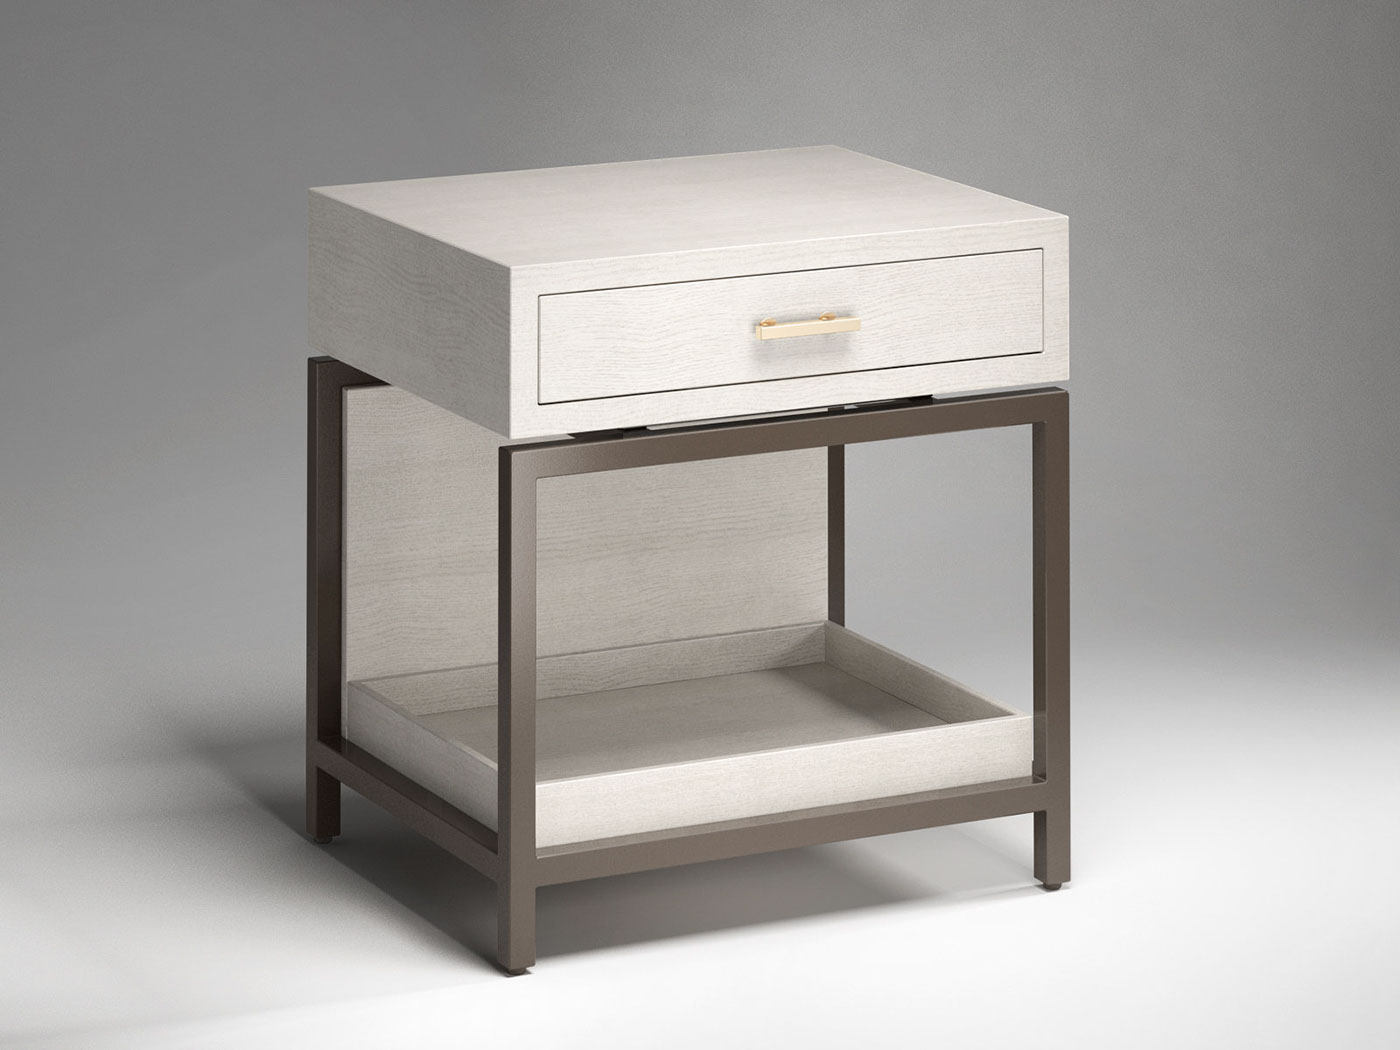 freebie FREE 3d model samuelson design connected 8479-nightstand Nightstand contemporary sideboard